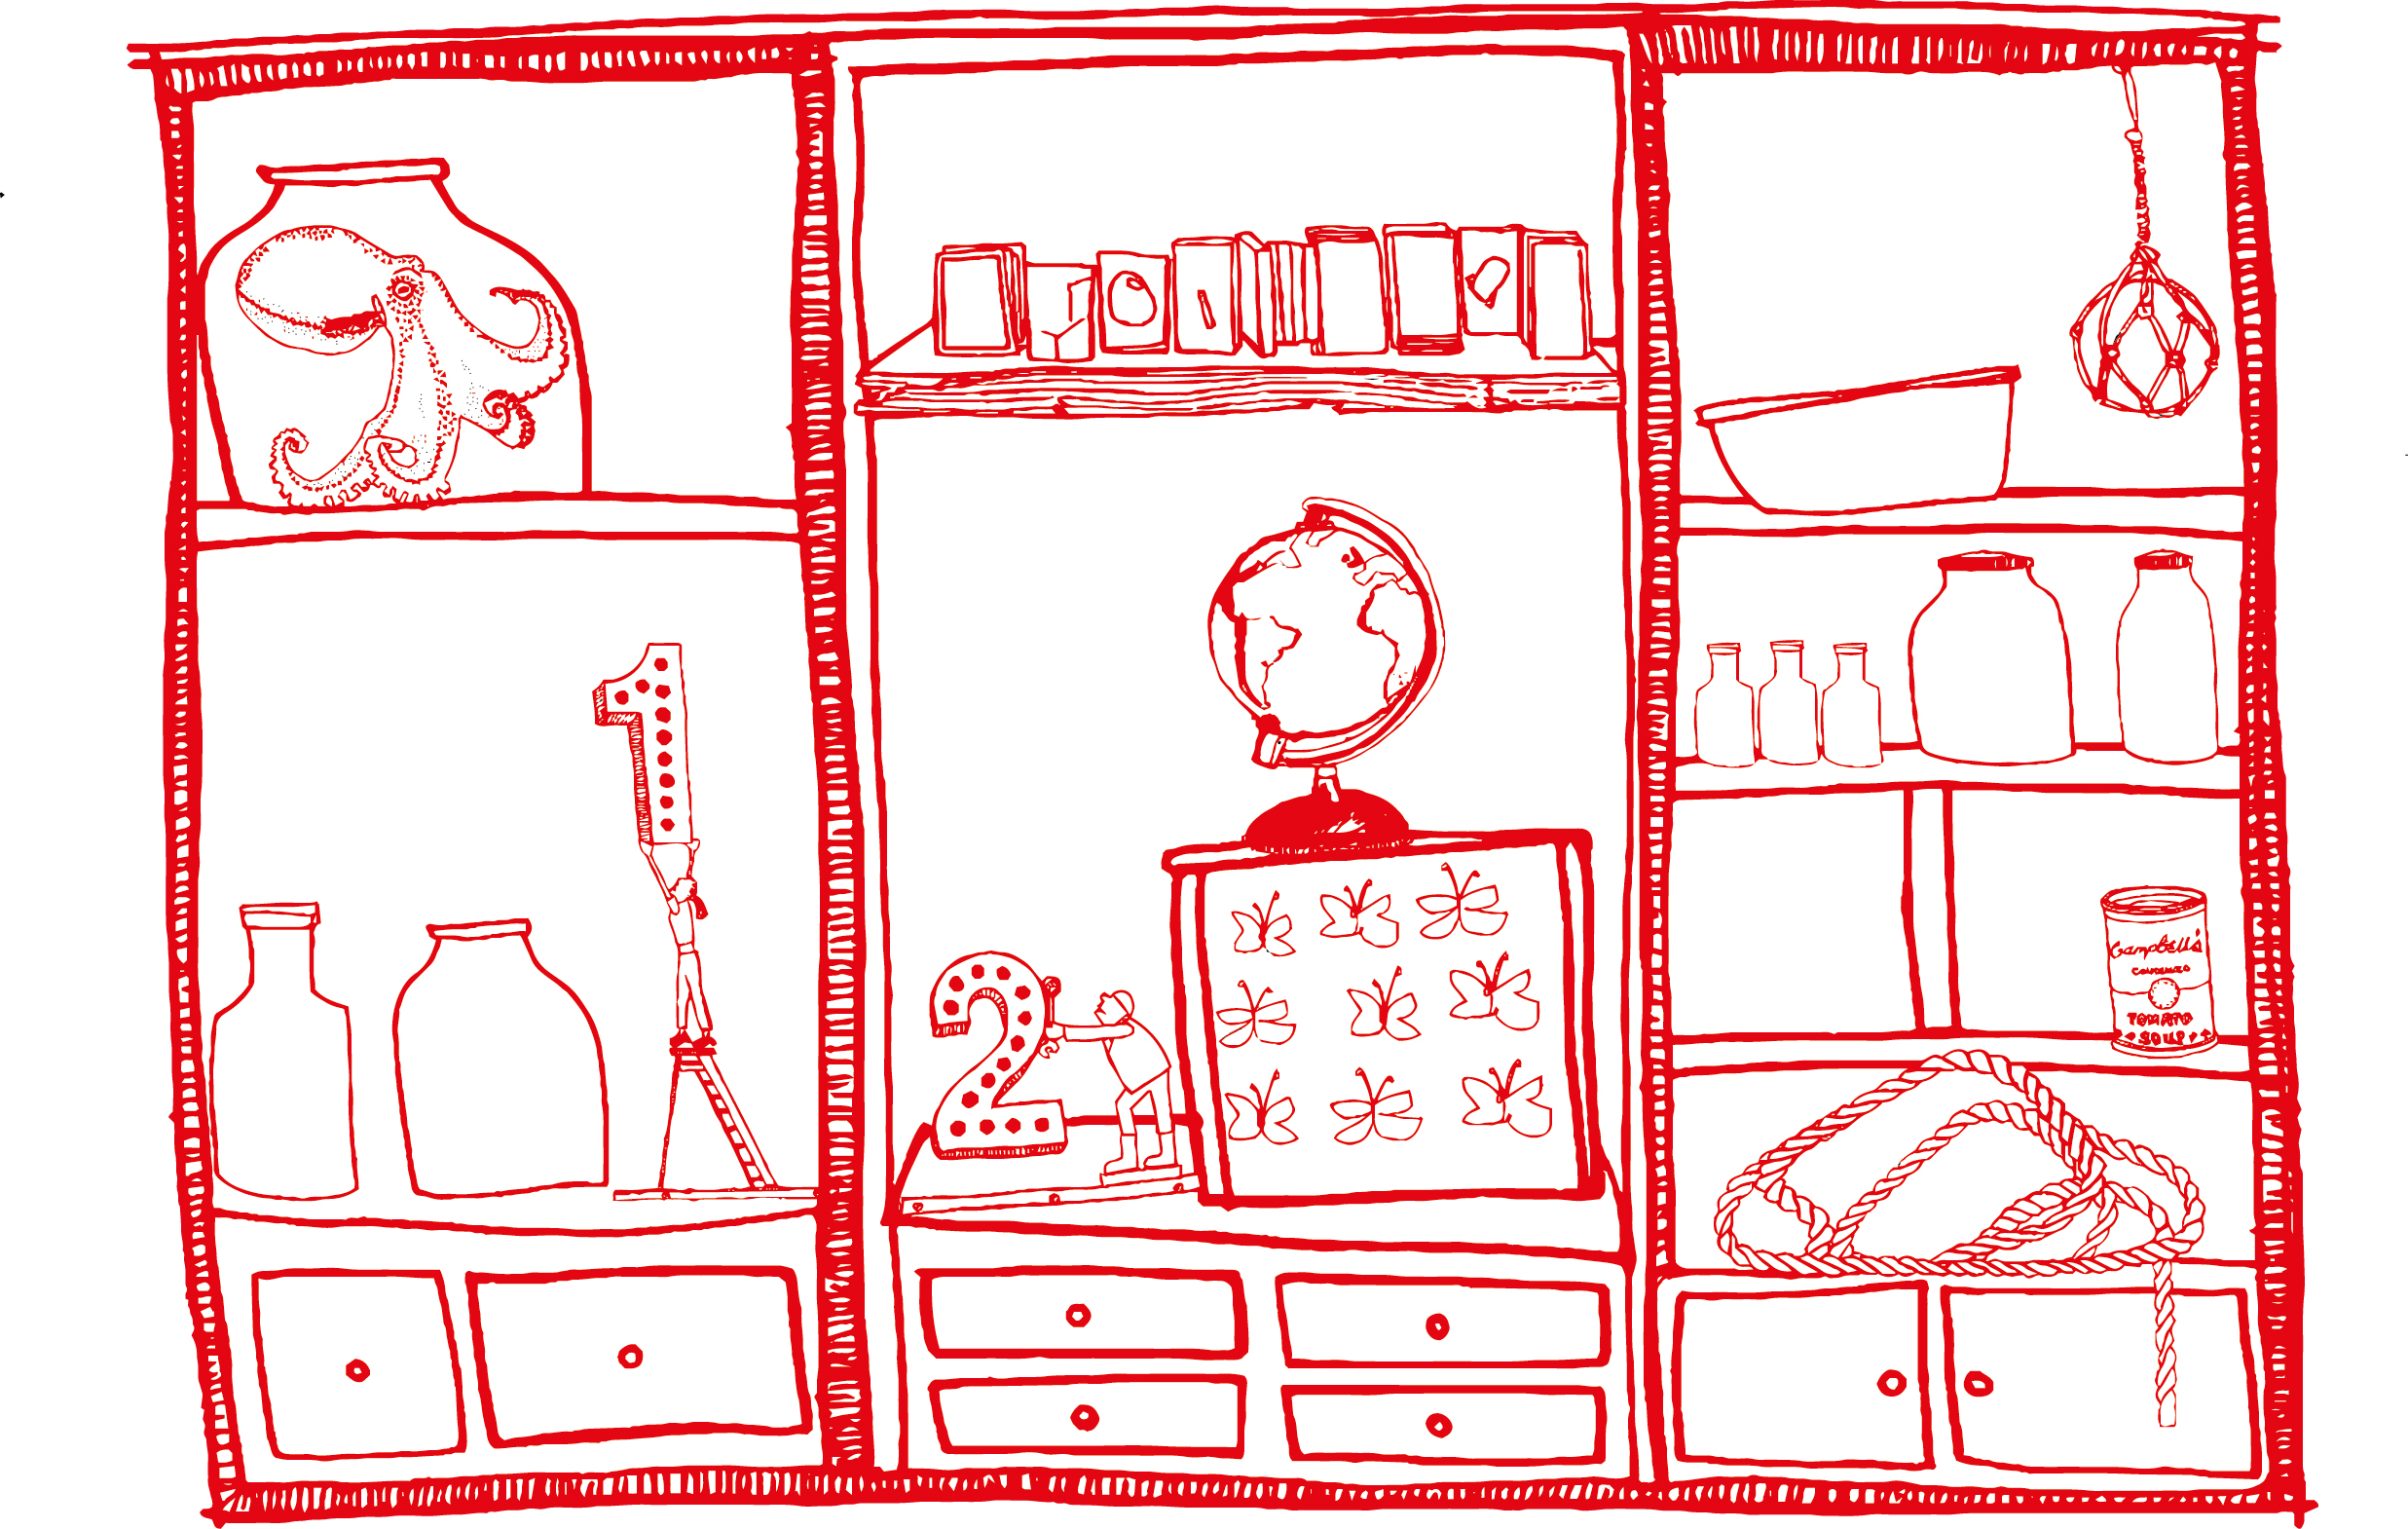 A Cabinet of Curiosities from my journey: illustration by Stephanie Sandall, copyright FCBStudios